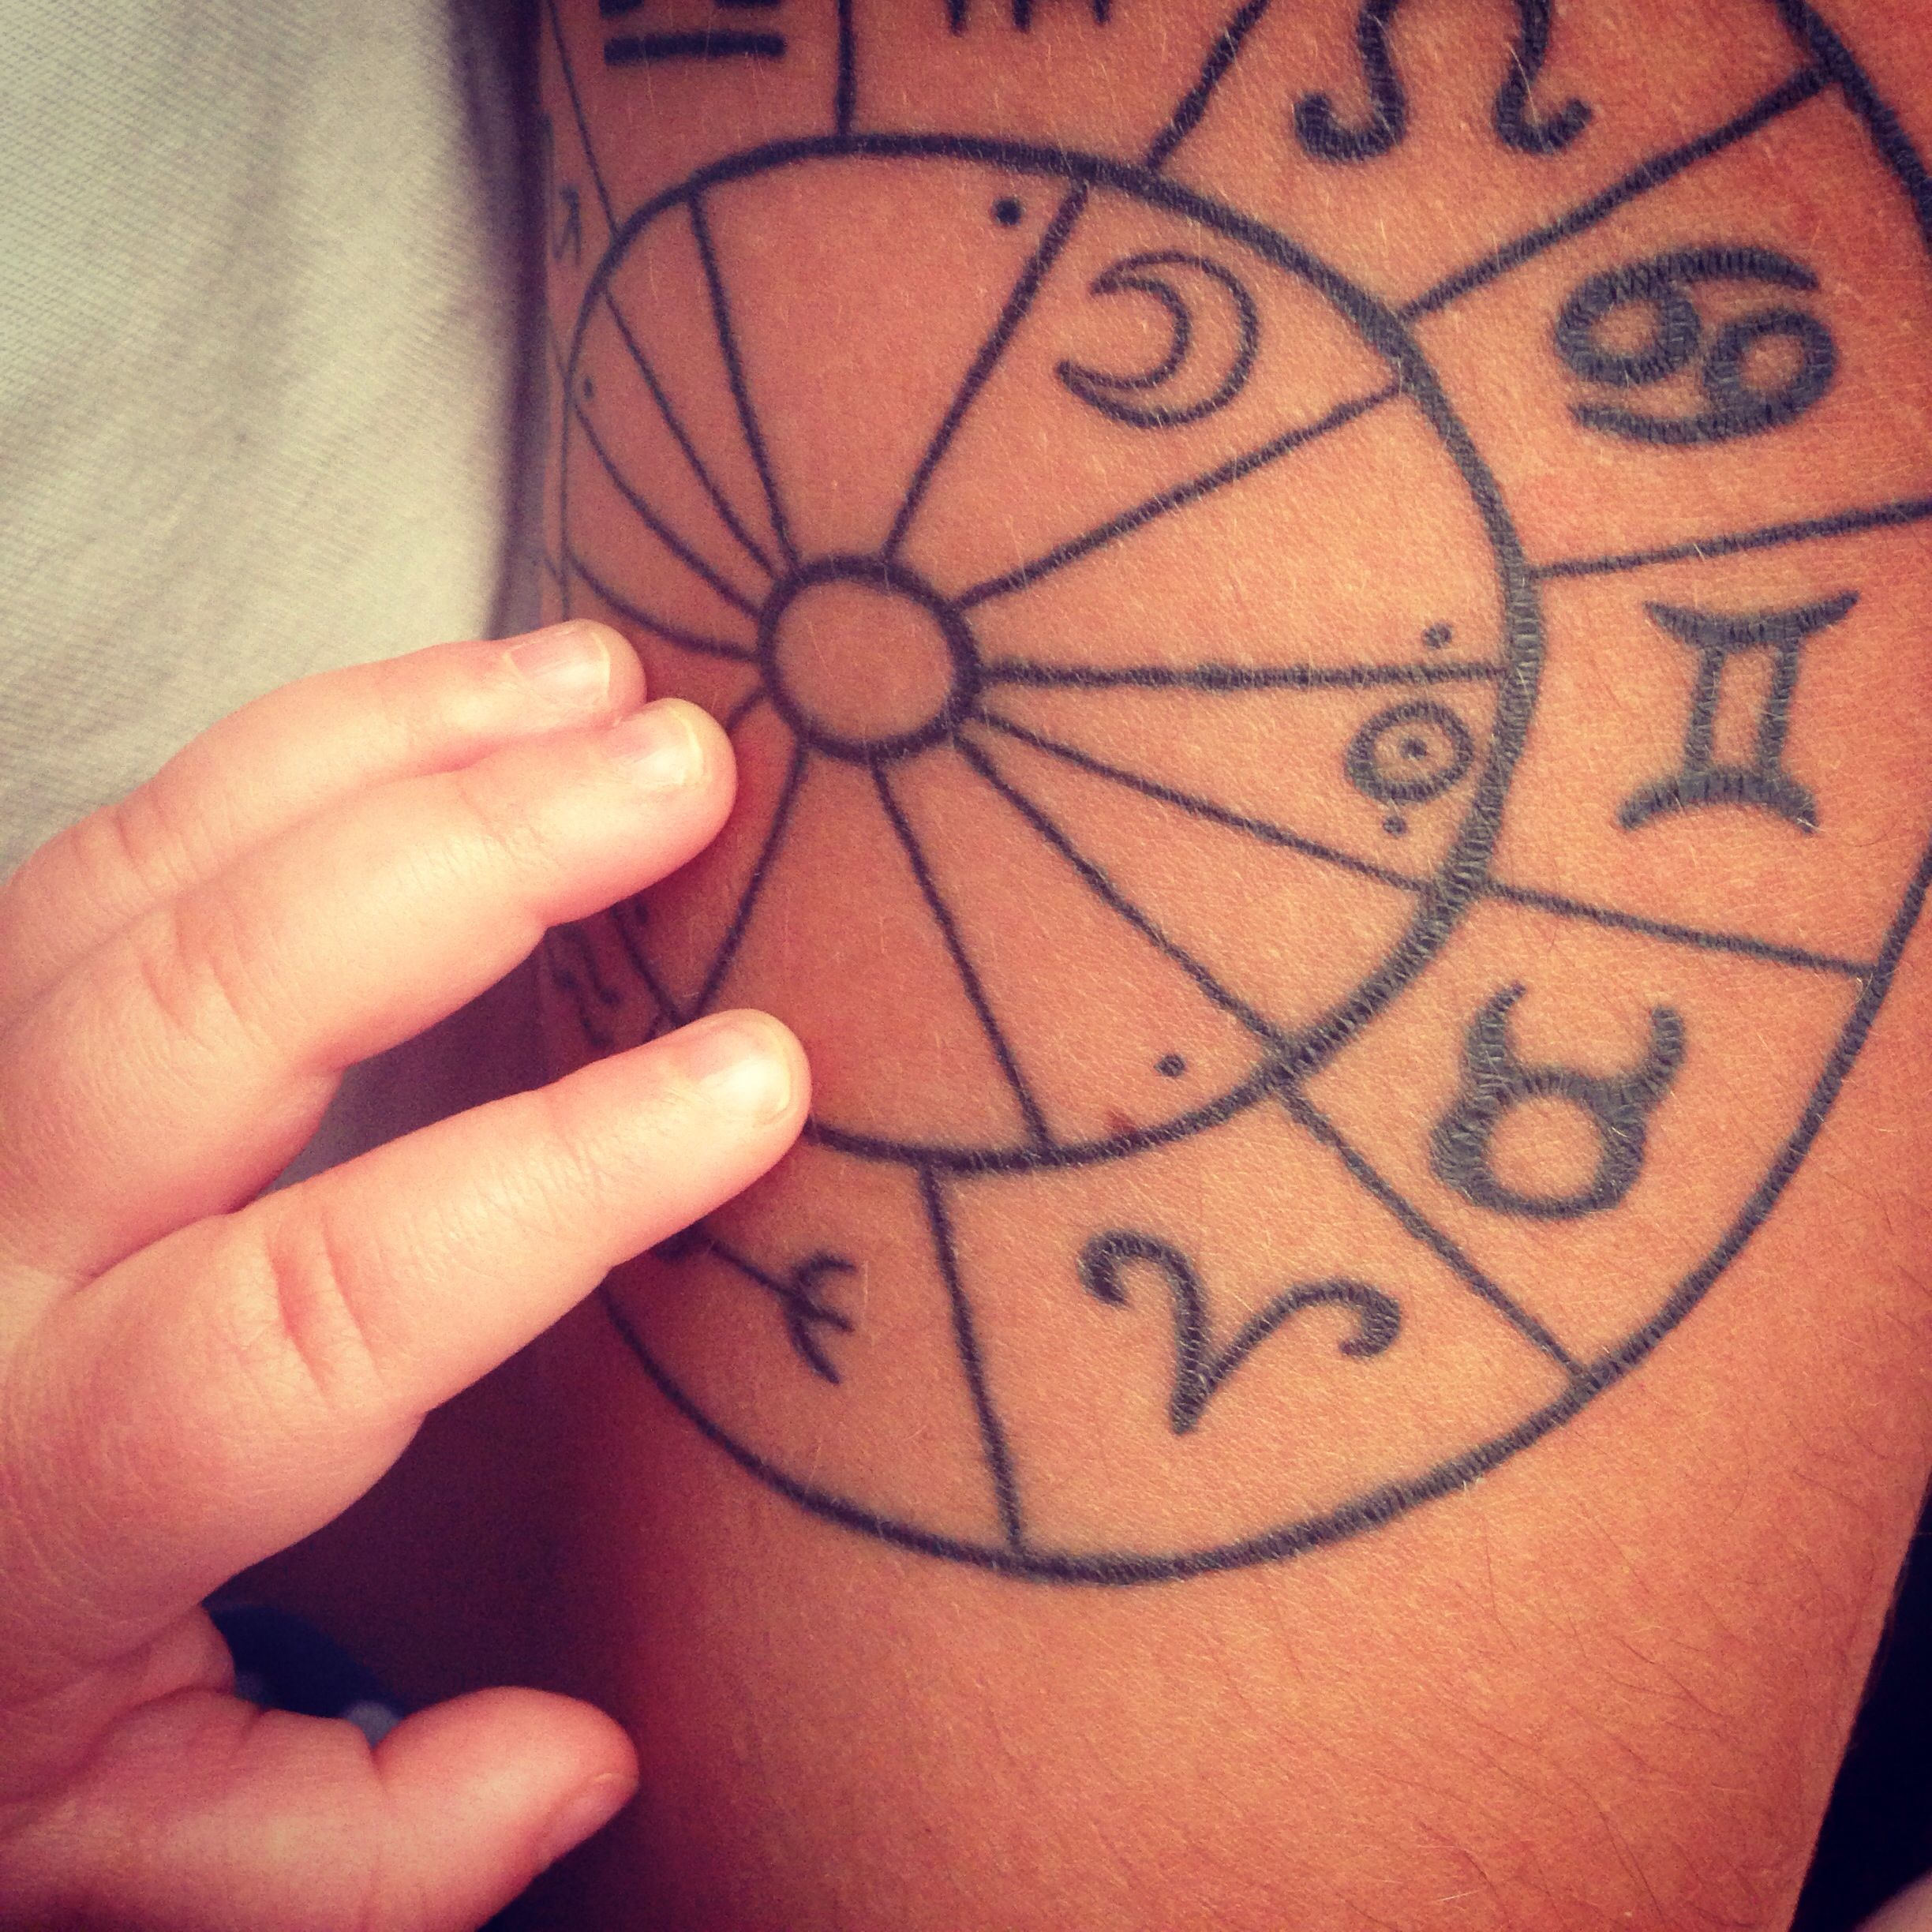 Astrological birth chart tattoo gemini tattoos pinterest astrological birth chart tattoo gemini geenschuldenfo Choice Image